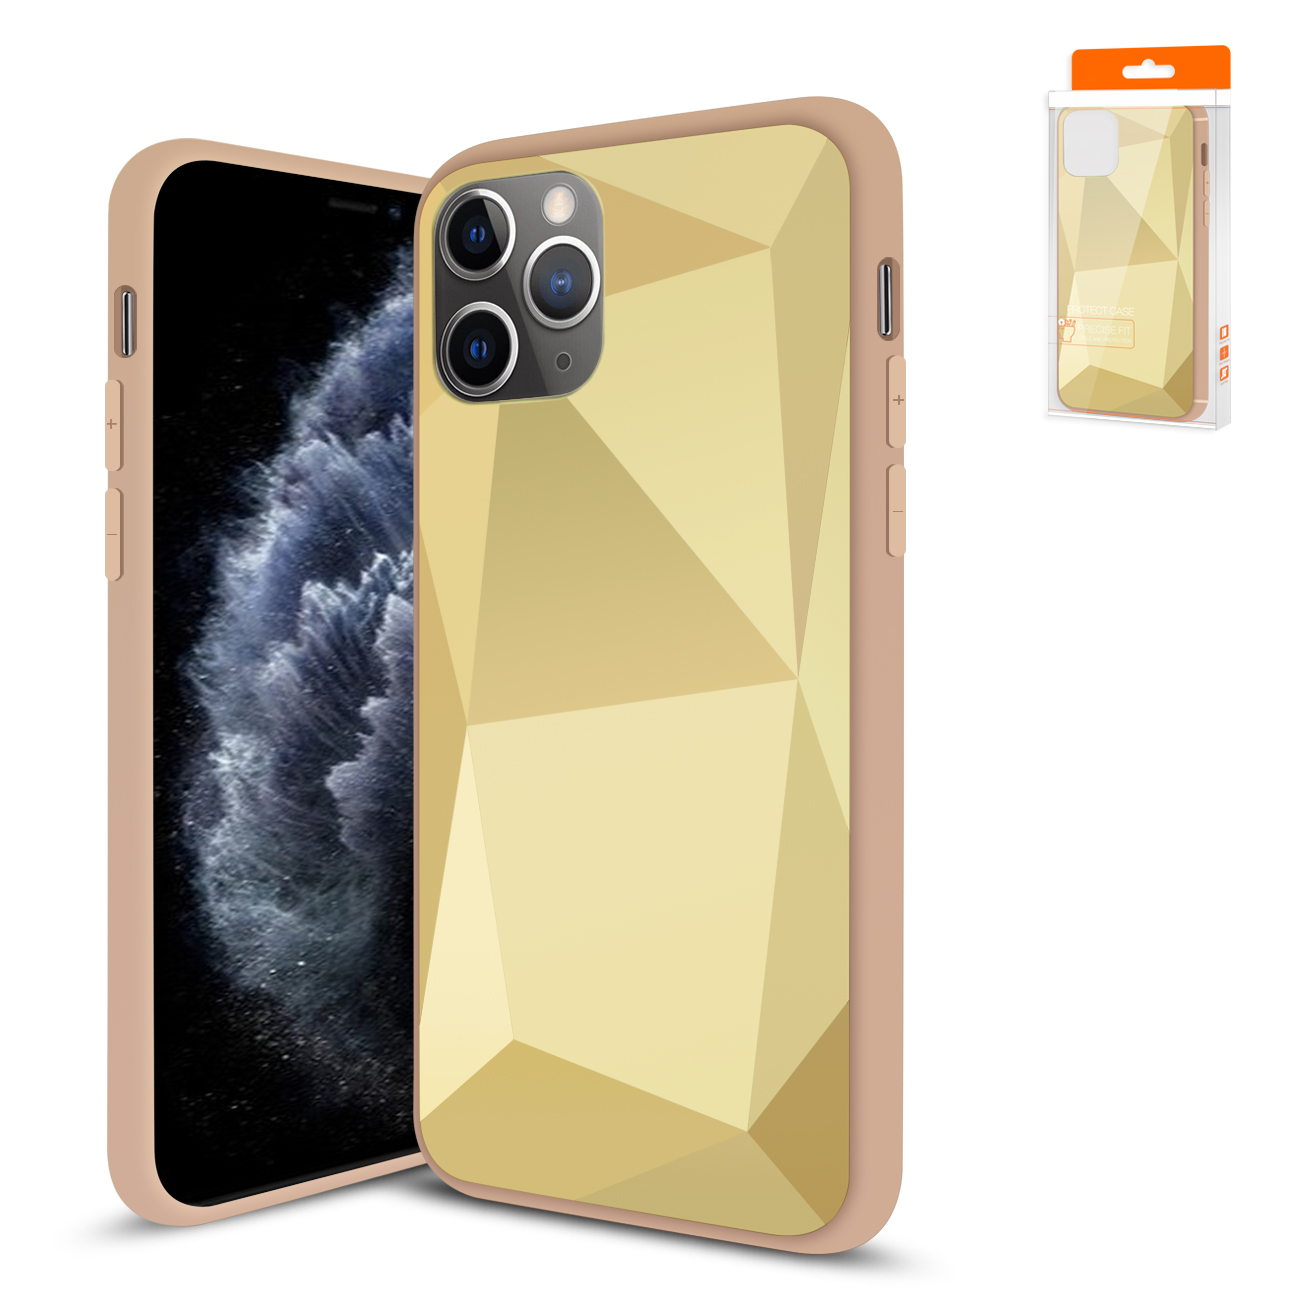 Apple iPhone 11 Pro Max Apple Diamond Cases In Gold